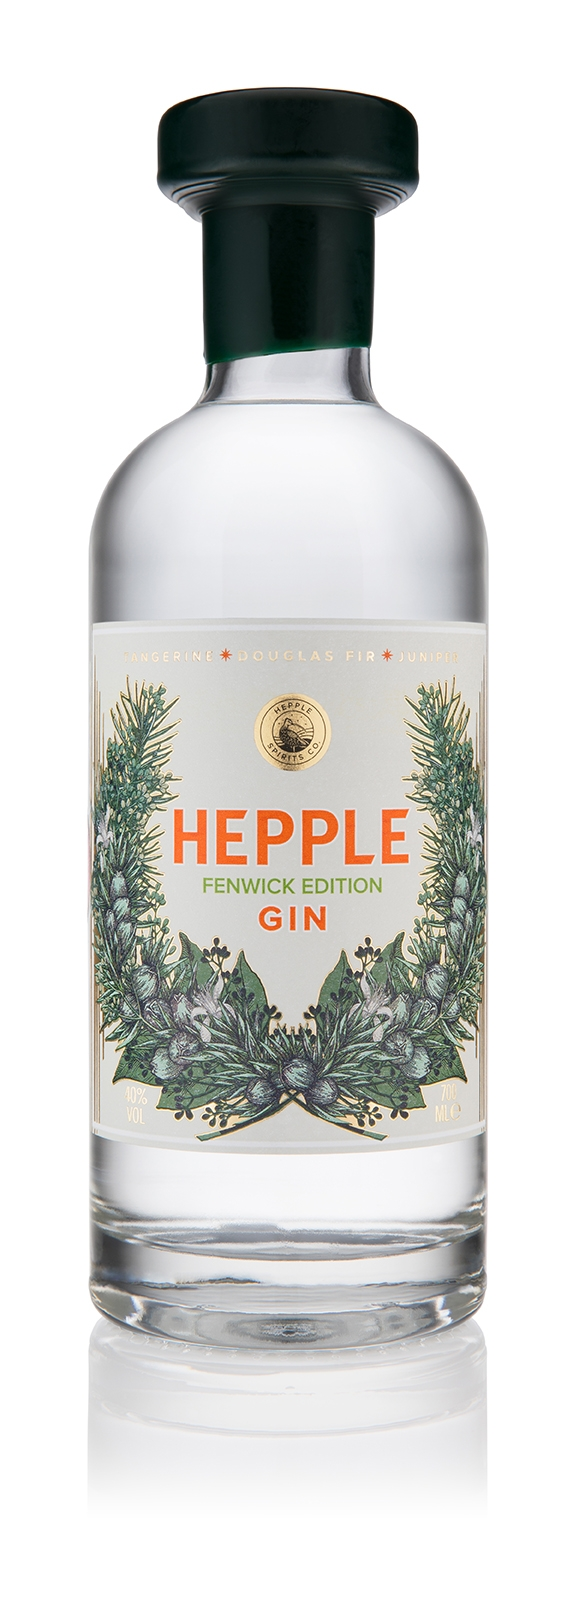 Hepple Fenwick Edition Gin